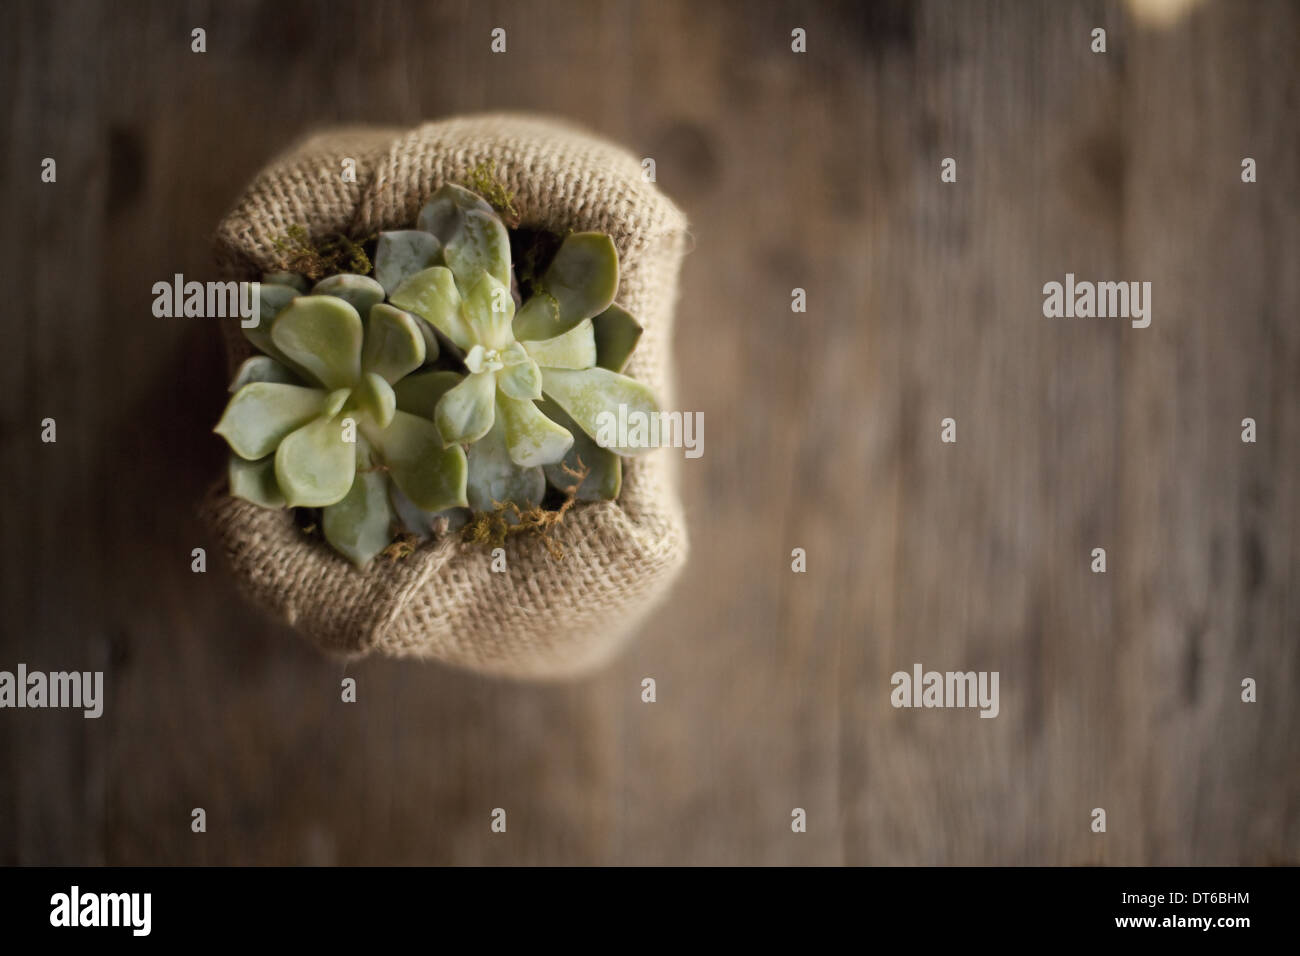 A small succulent plant in a container covered with hessian or burlap, on a dining table. - Stock Image